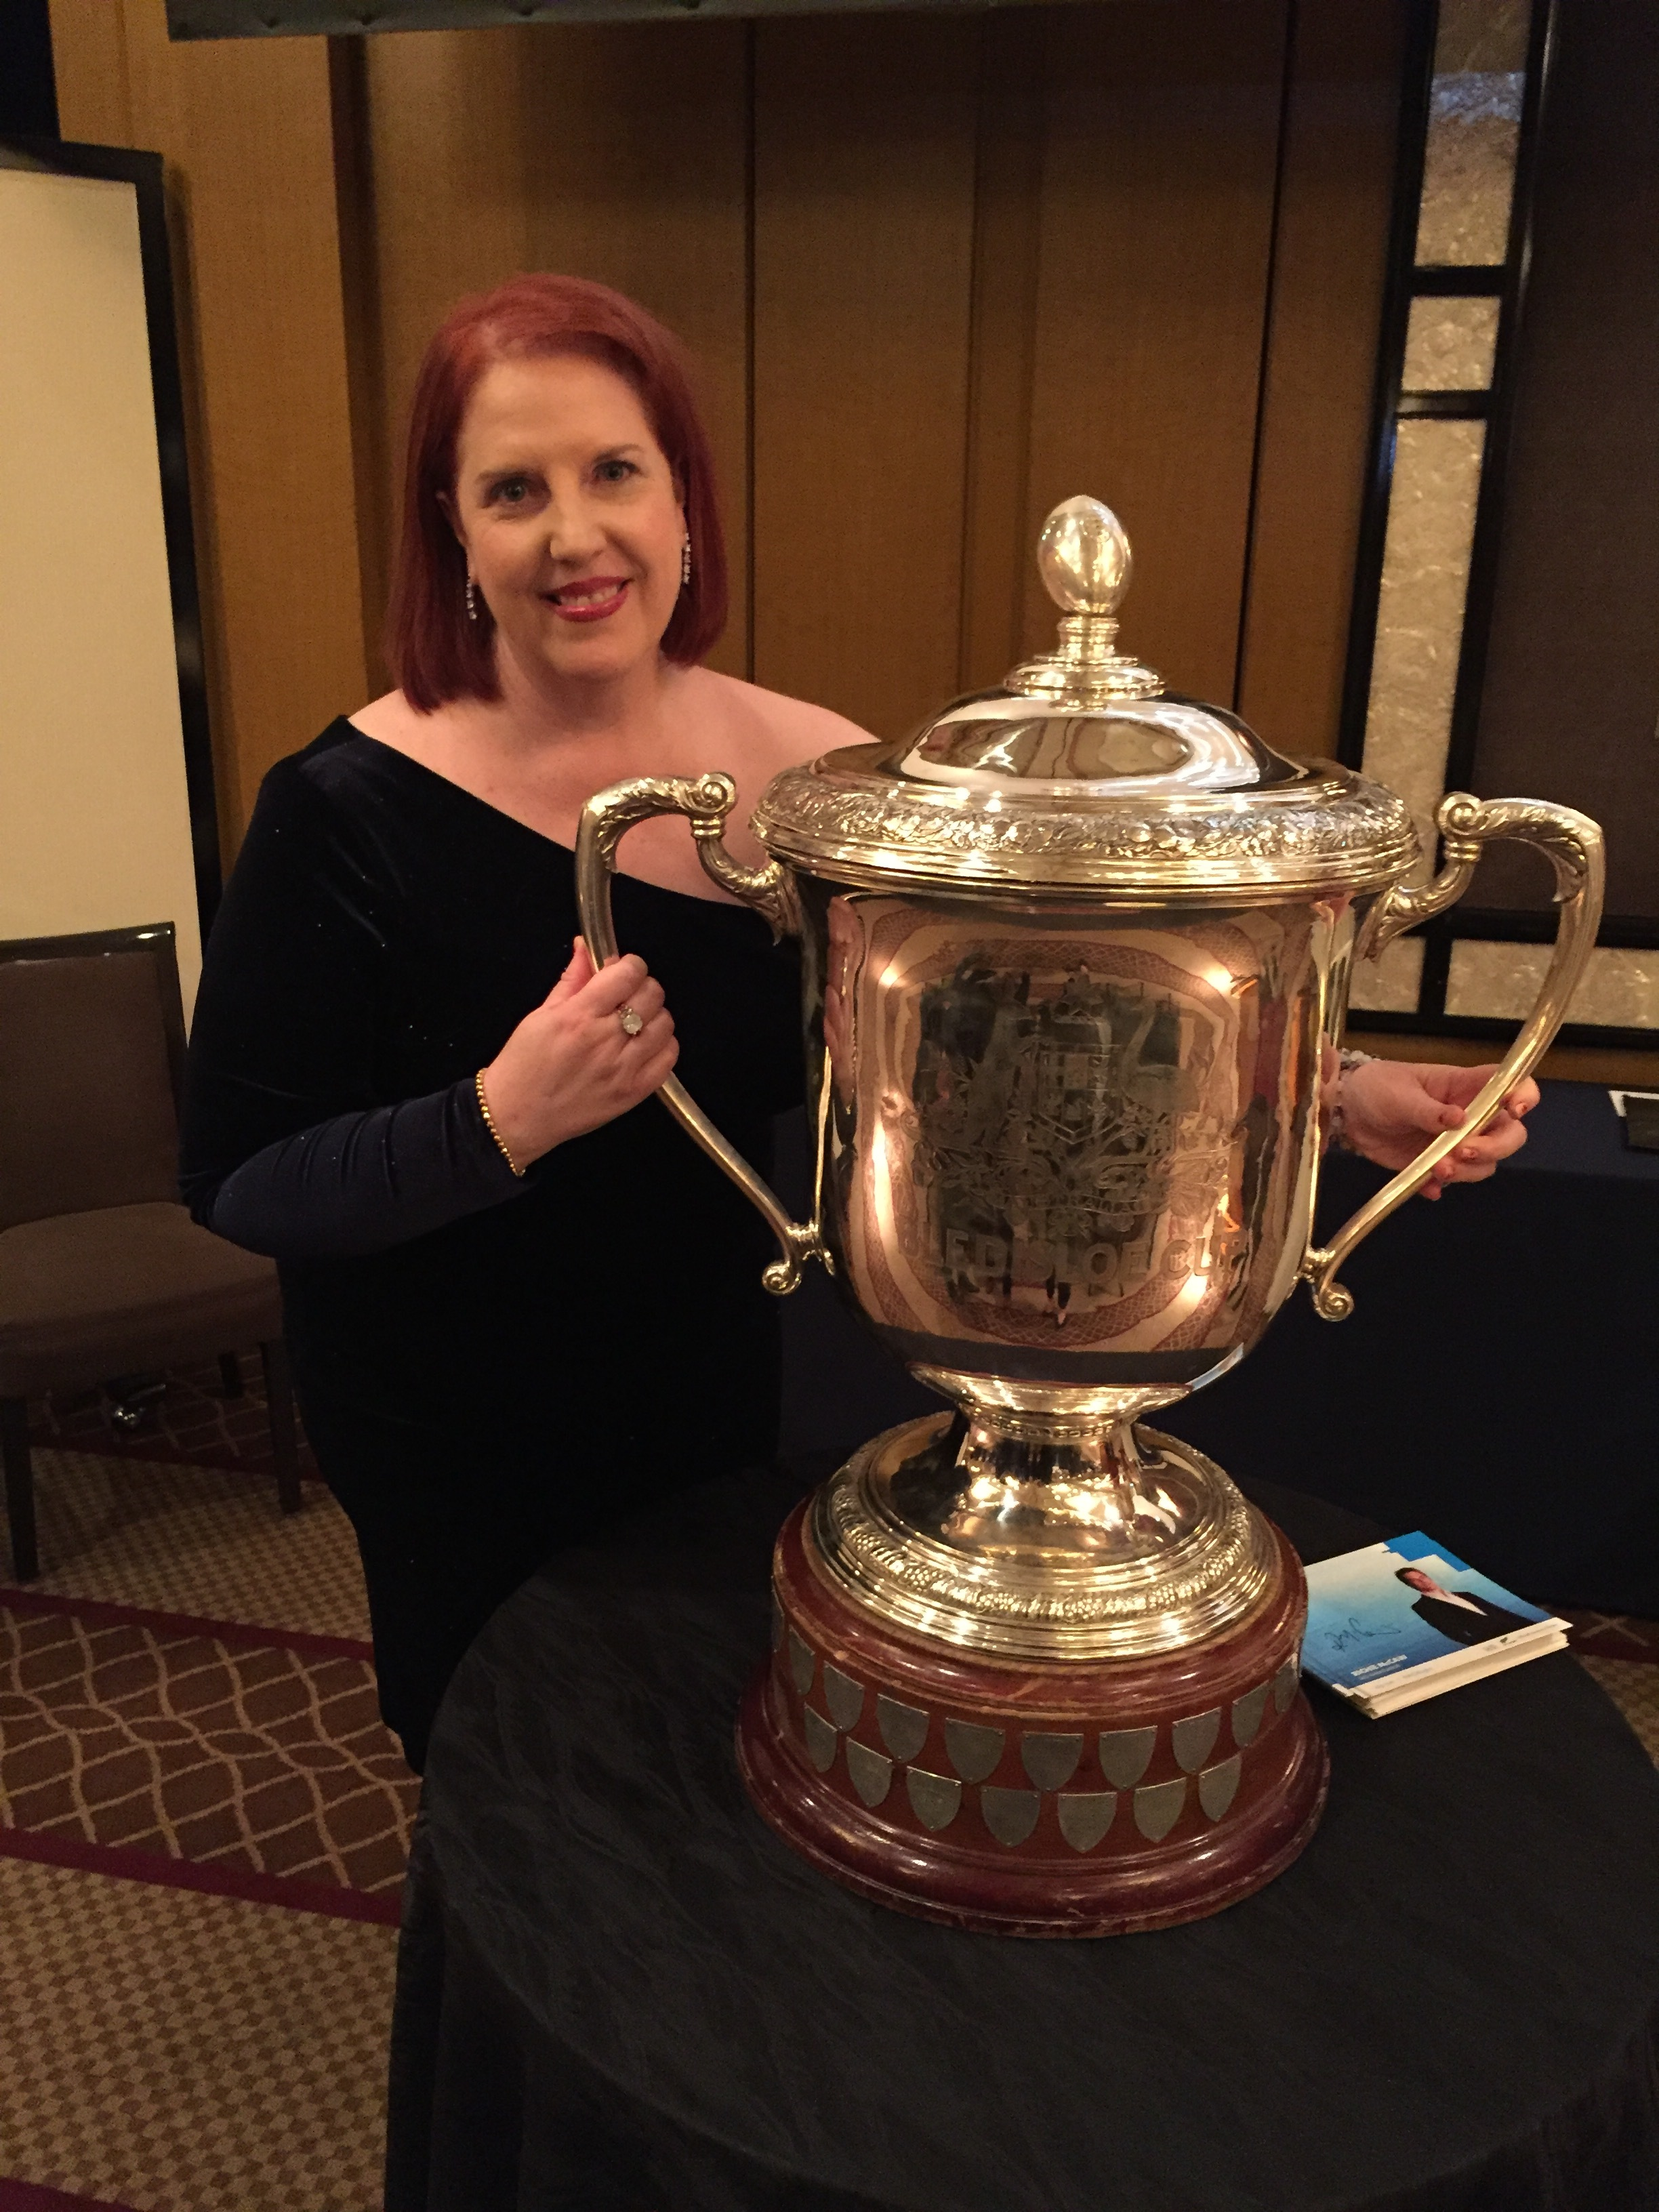 The Bledisloe Cup in Japan